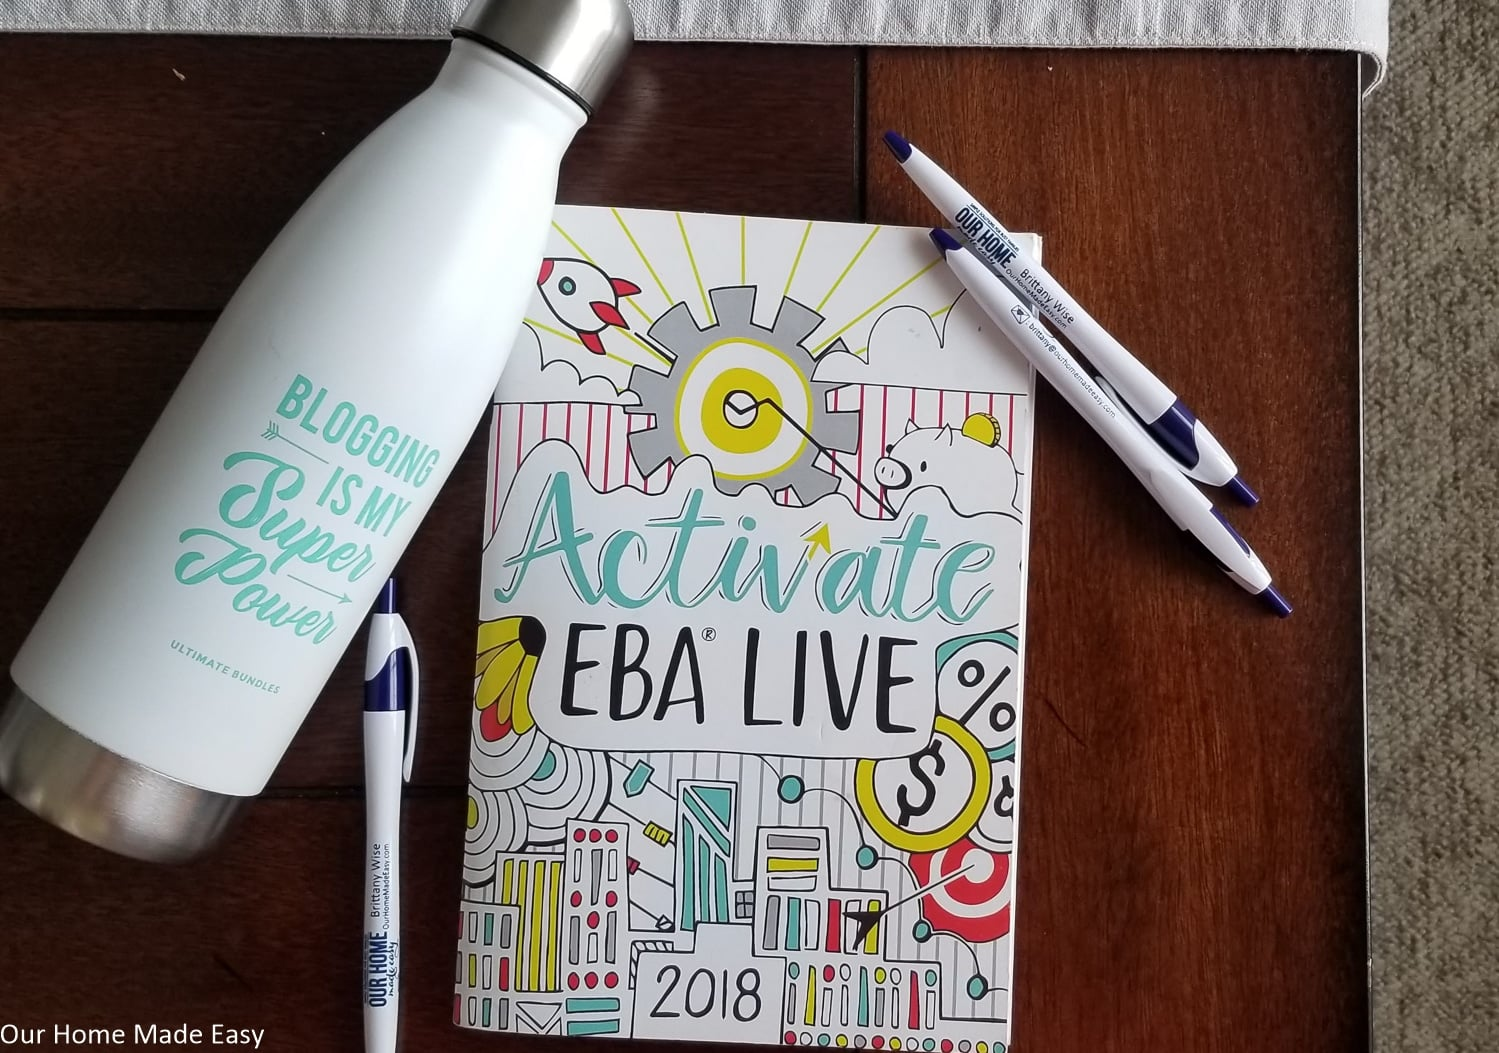 Free blogger gifts from Activate EBA Live blogging conference